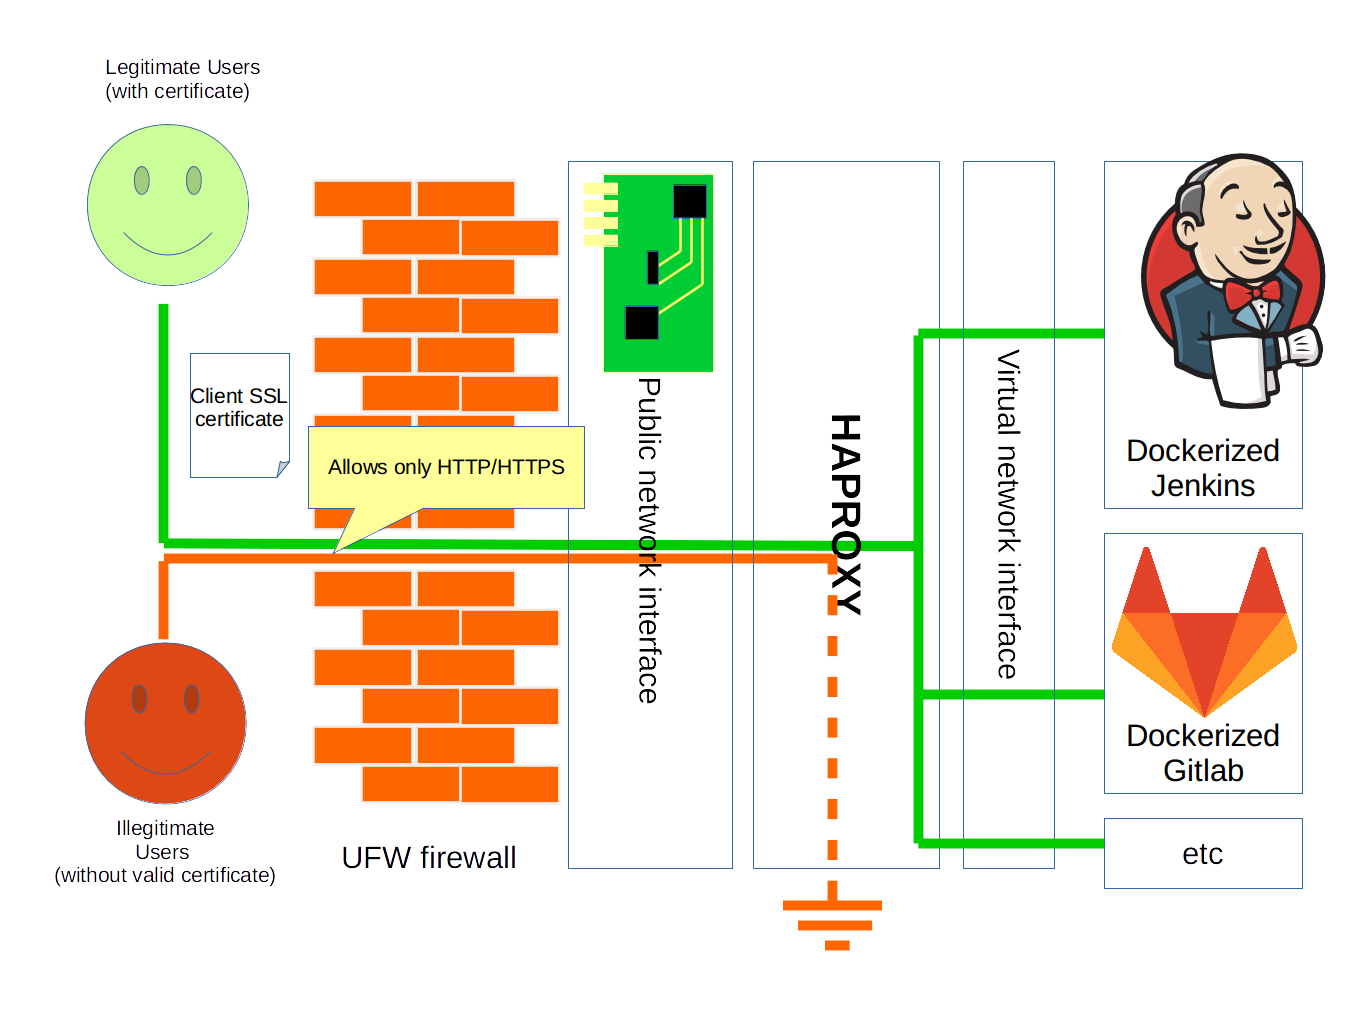 Securing a development server georges techblog schematics of firewall public network interface haproxy and applications 1betcityfo Images